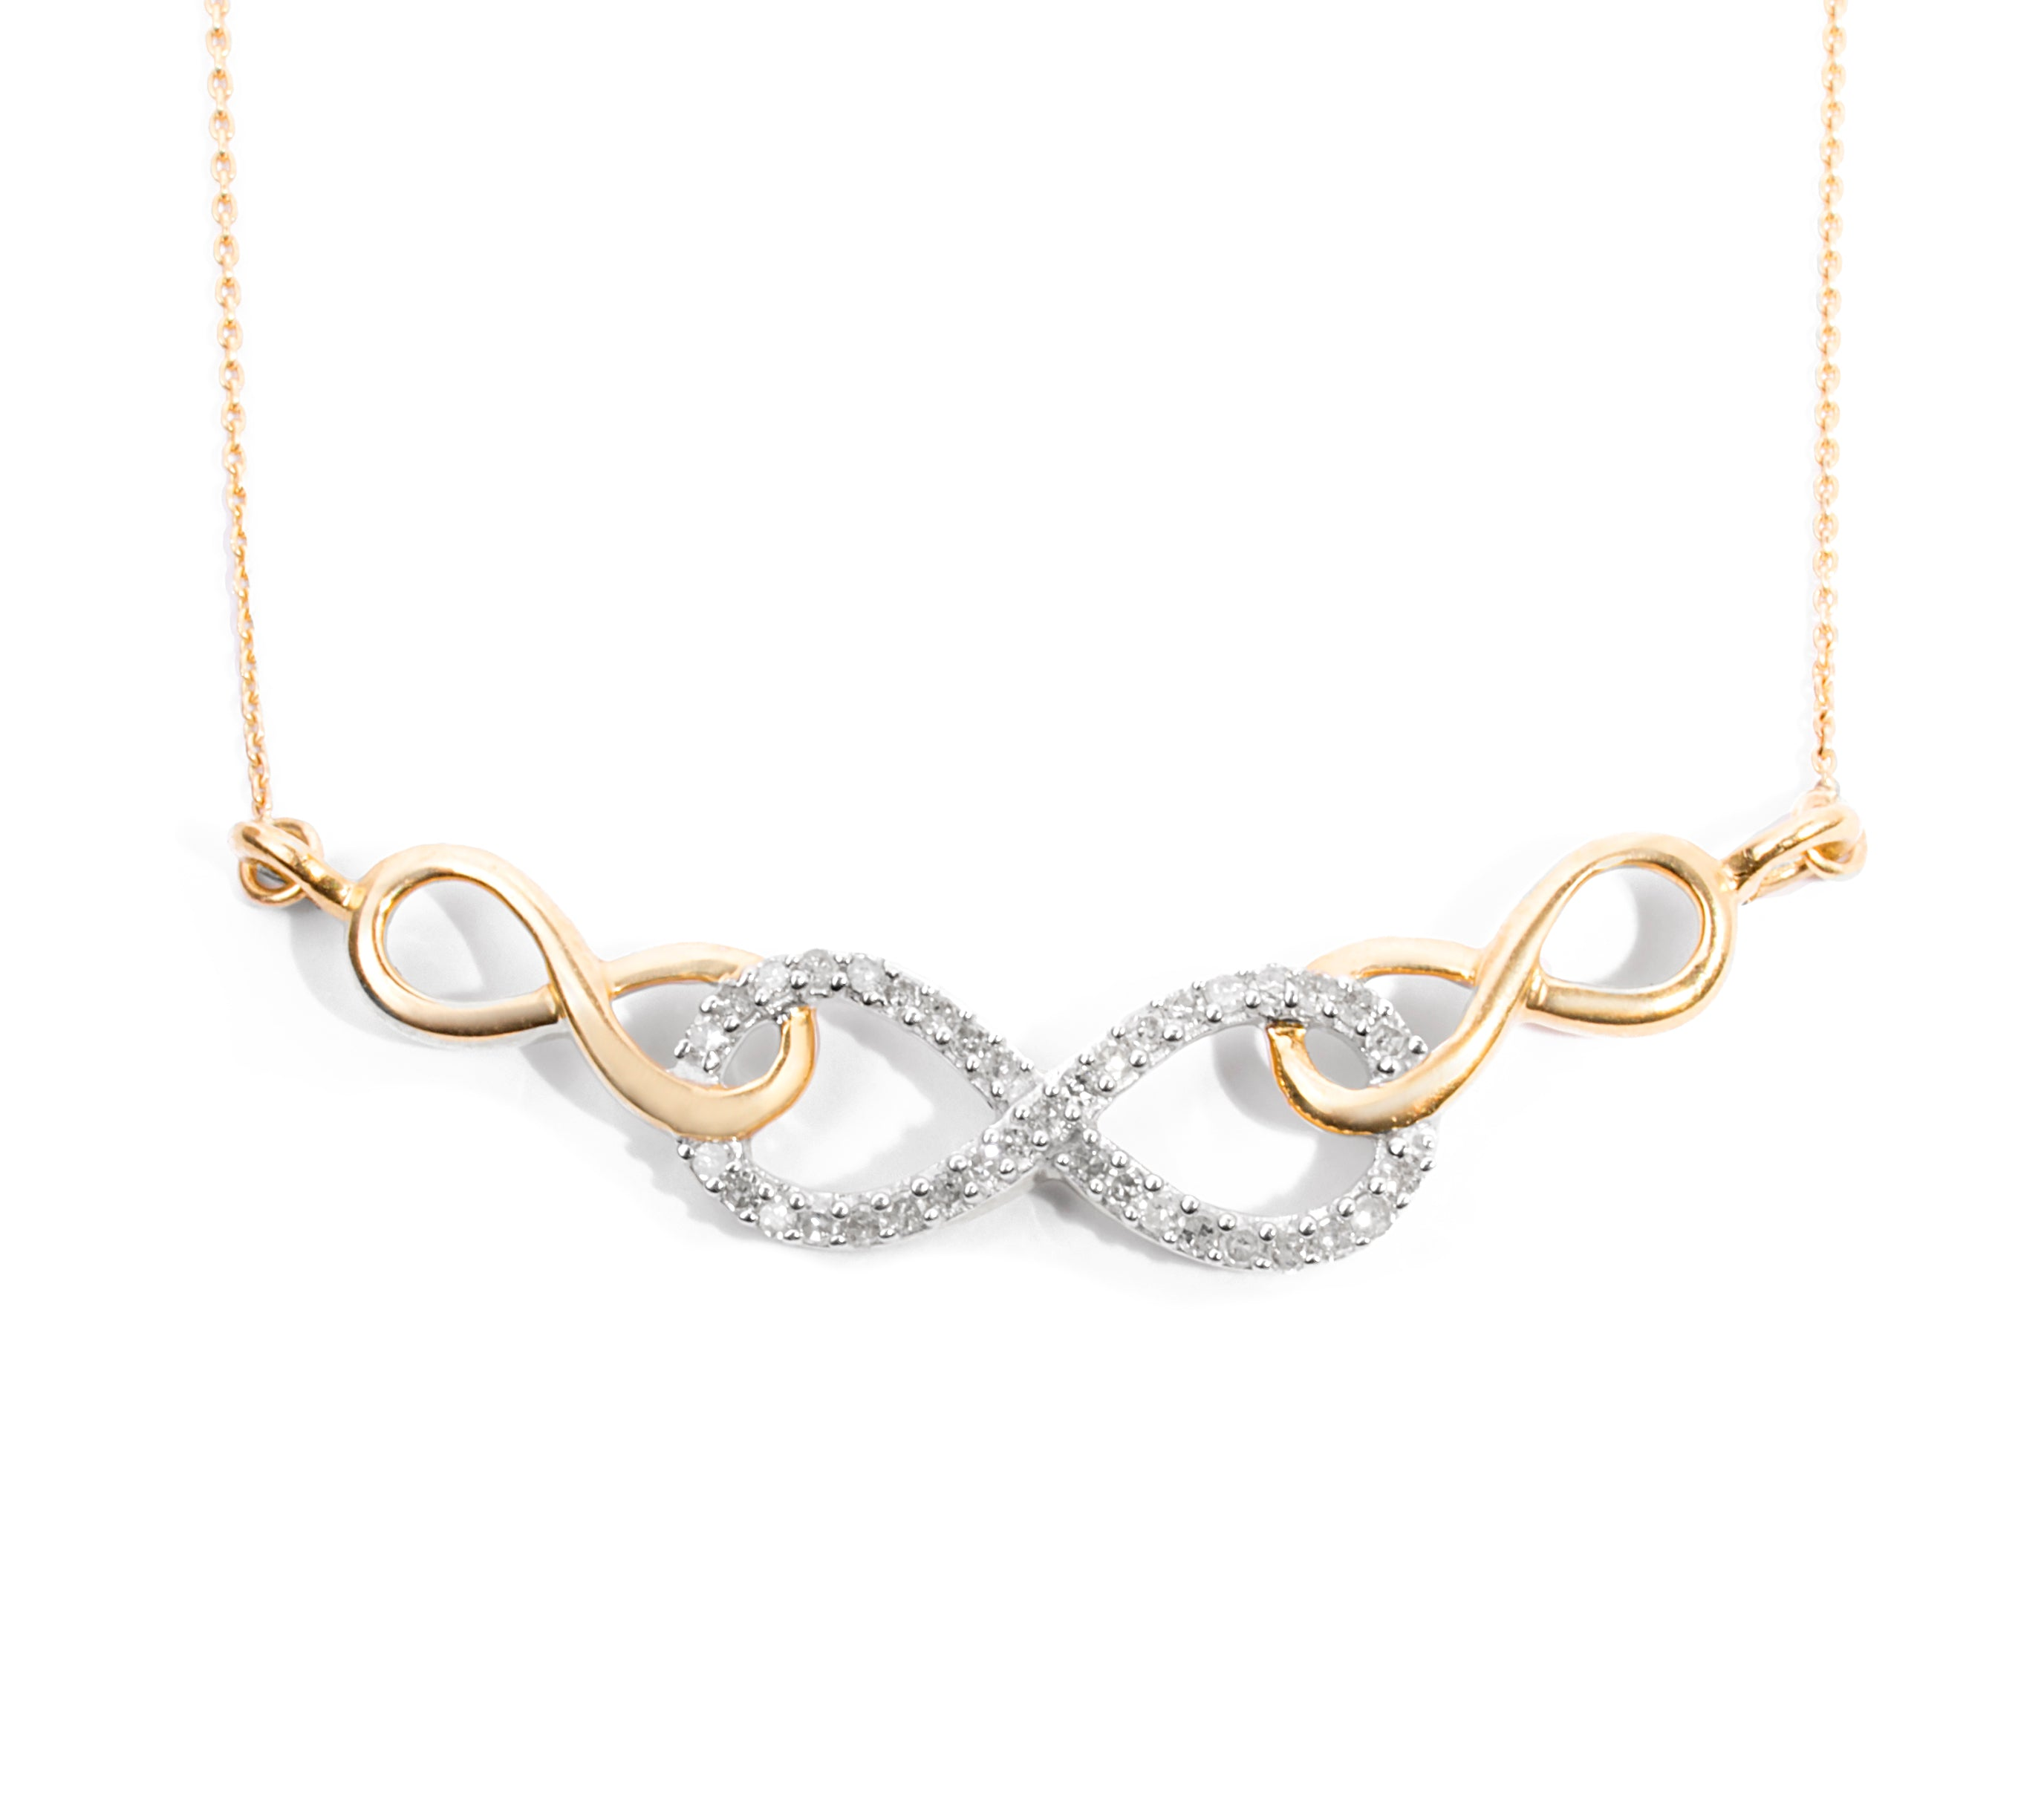 jewellers necklace product copy ben moss caribbean diamond